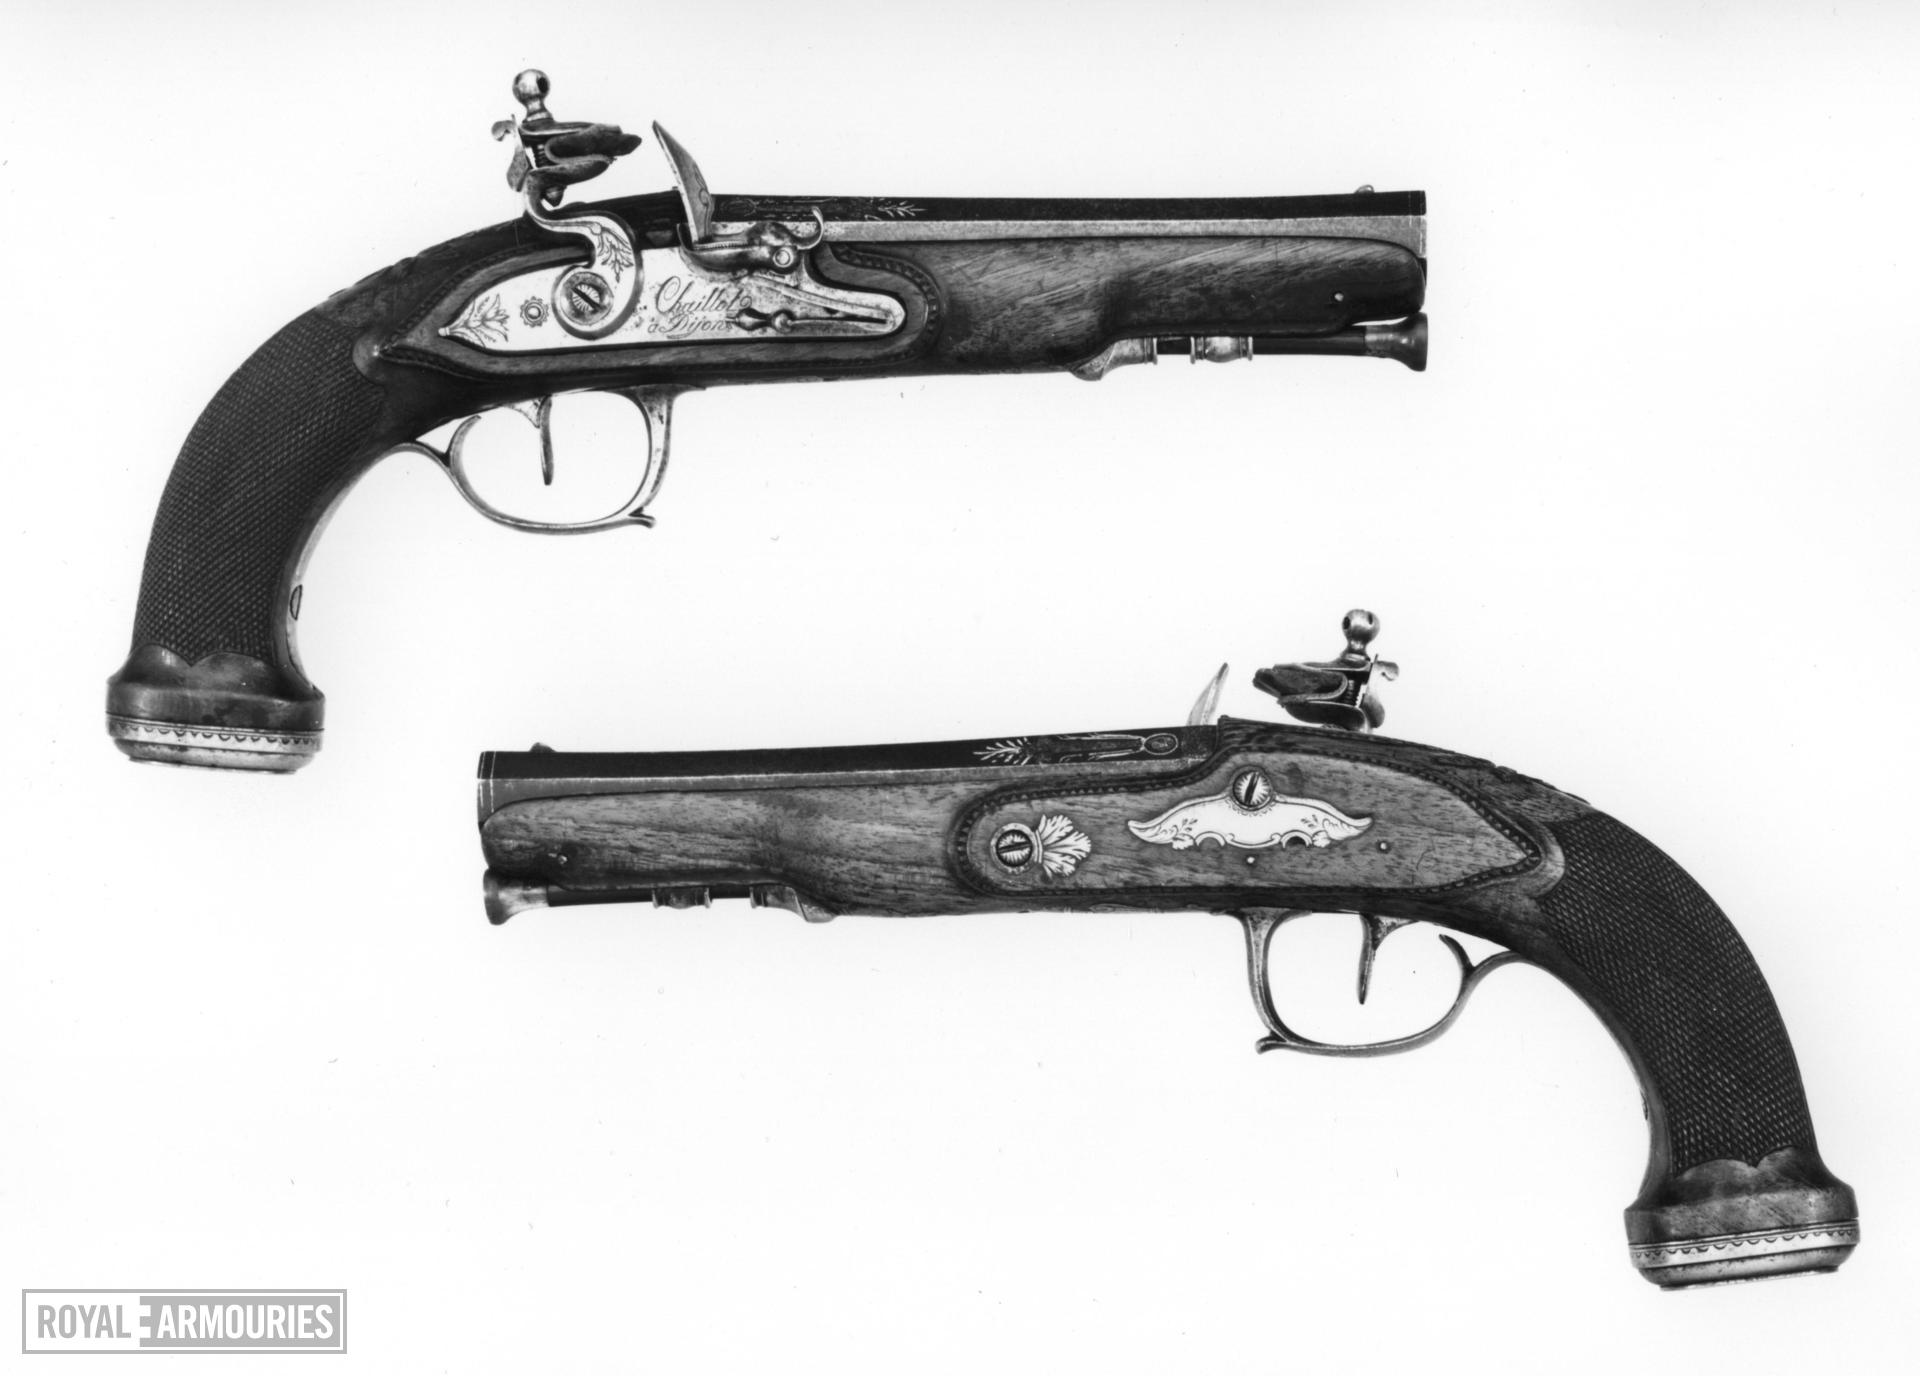 Flintlock pistol Barrel by Nicholas Le Clerc Lock by Chaillot a Dijon One of a pair; see XII.1317